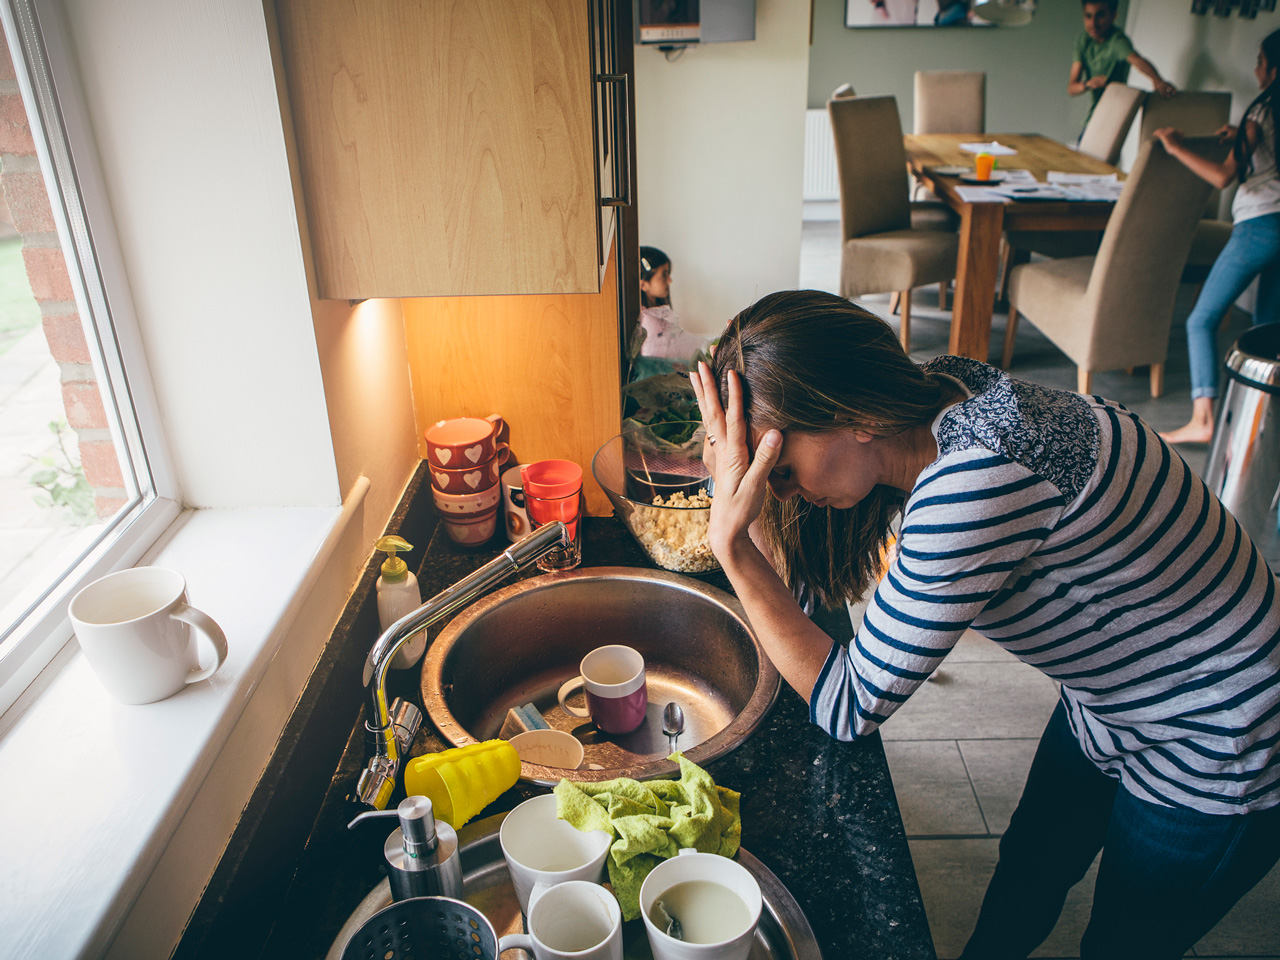 Mom leaning over messy counter looking very stressed as kids run around in background